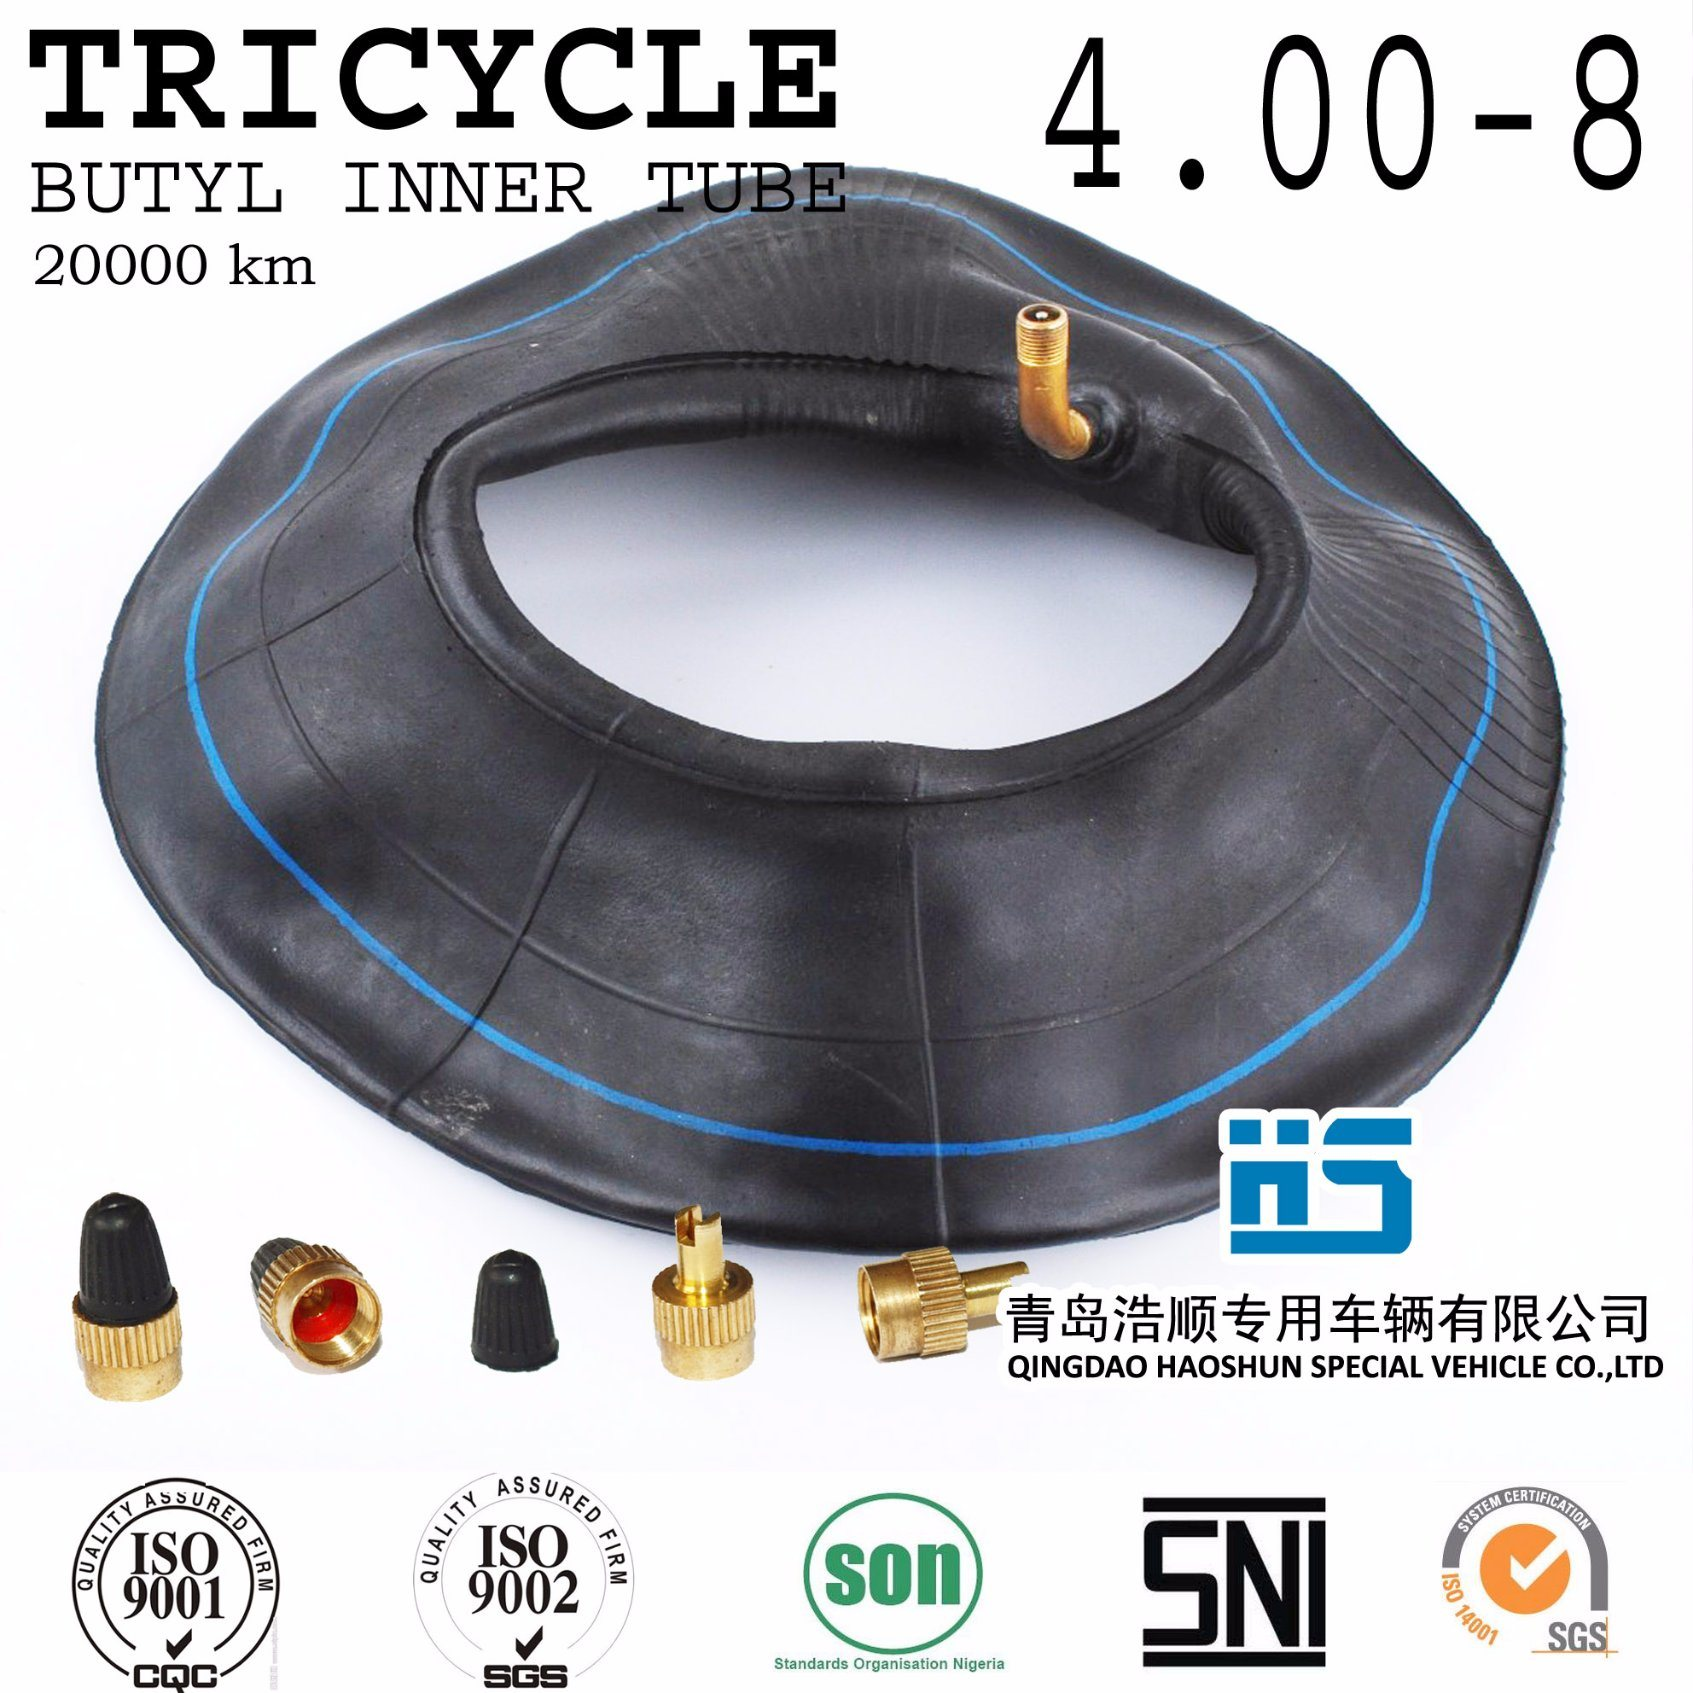 Tricycle Butyl Inner Tube Mrf Tuktuk Tyre Tube Three Wheeler Tyre and Tube 4.00-8 Iron Valve 4.00-12 4.50-12 5.00-12